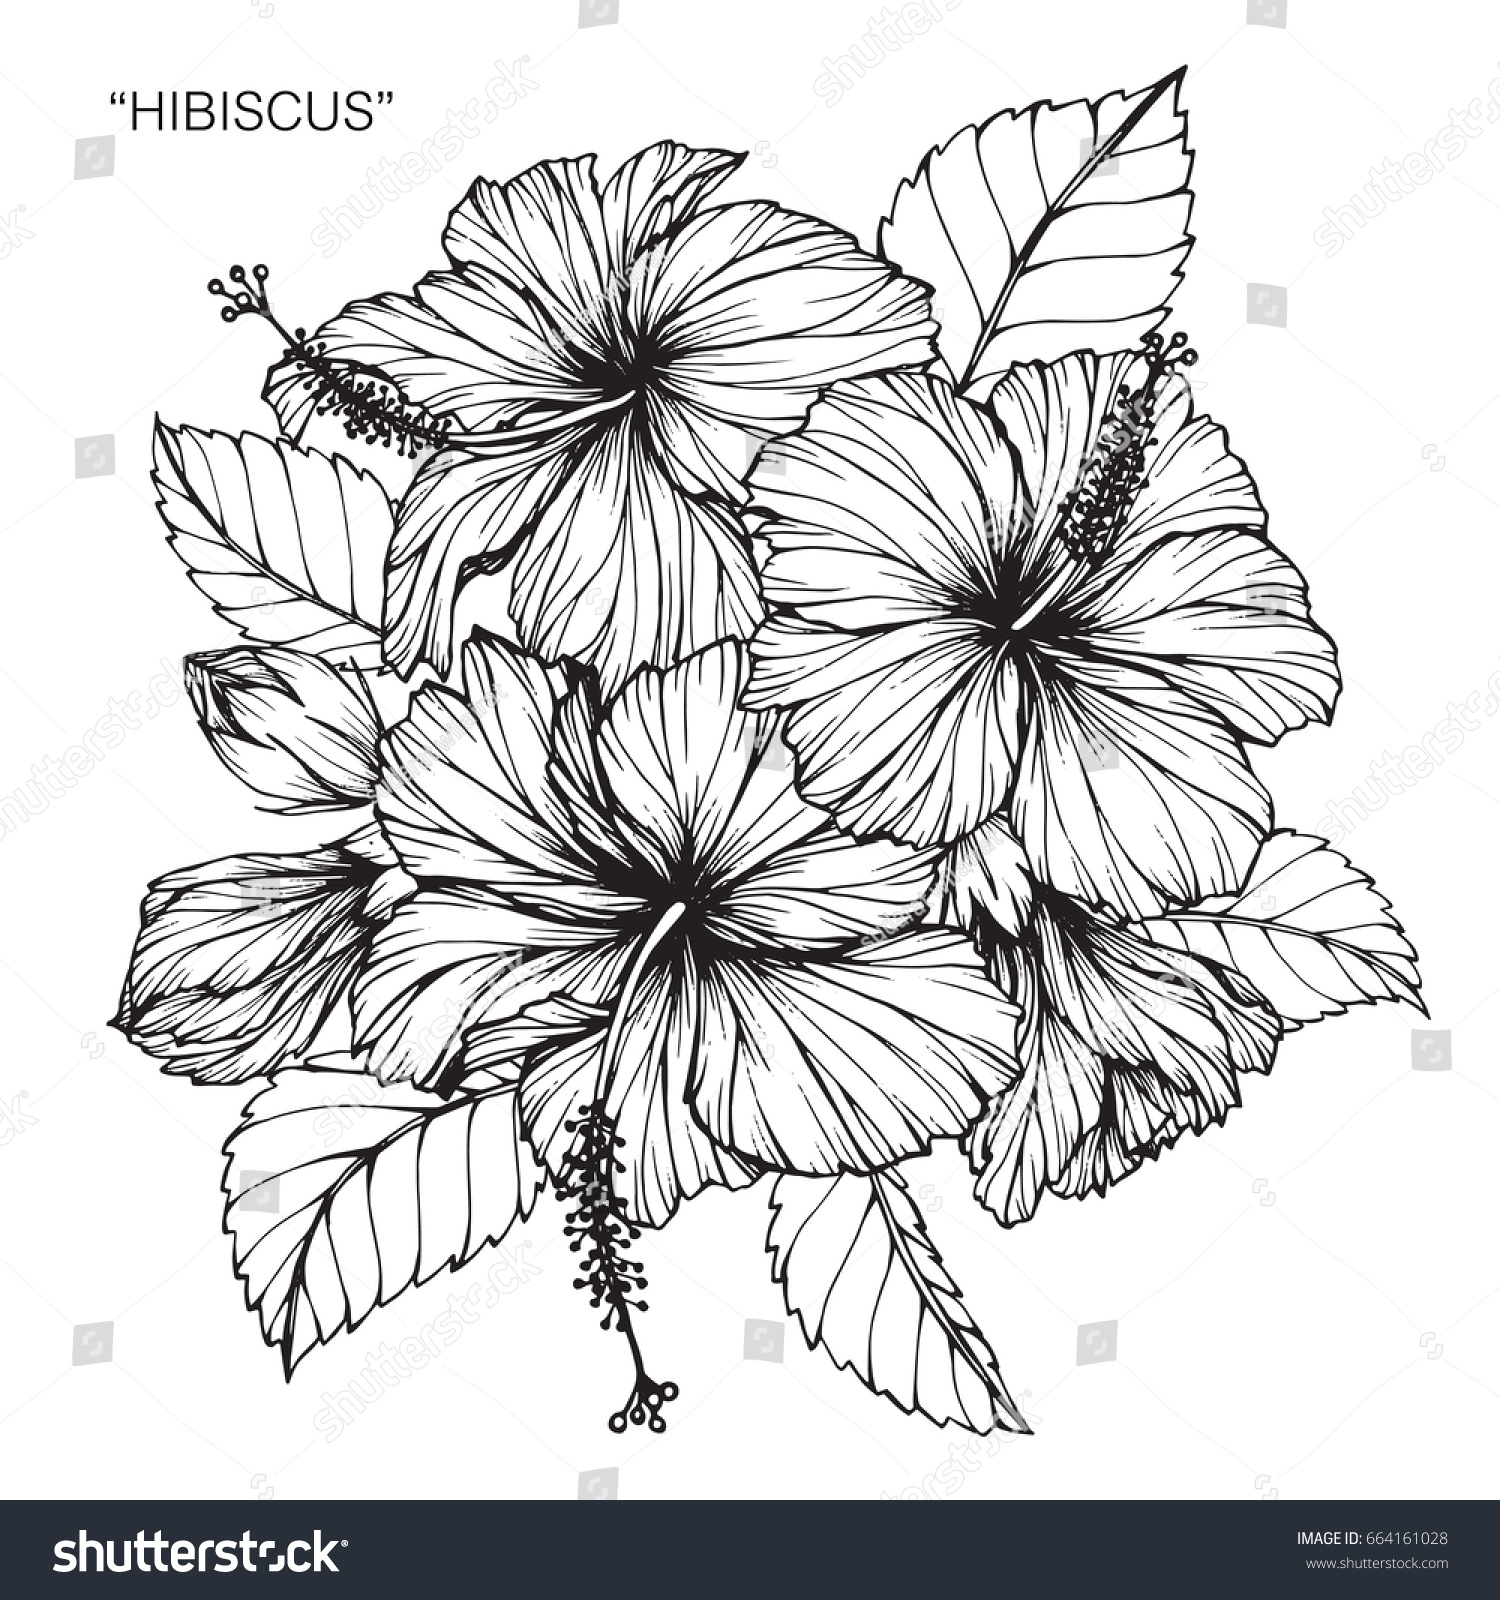 Hibiscus Flower Line Drawing : Hibiscus flowers drawing sketch lineart on stock vector